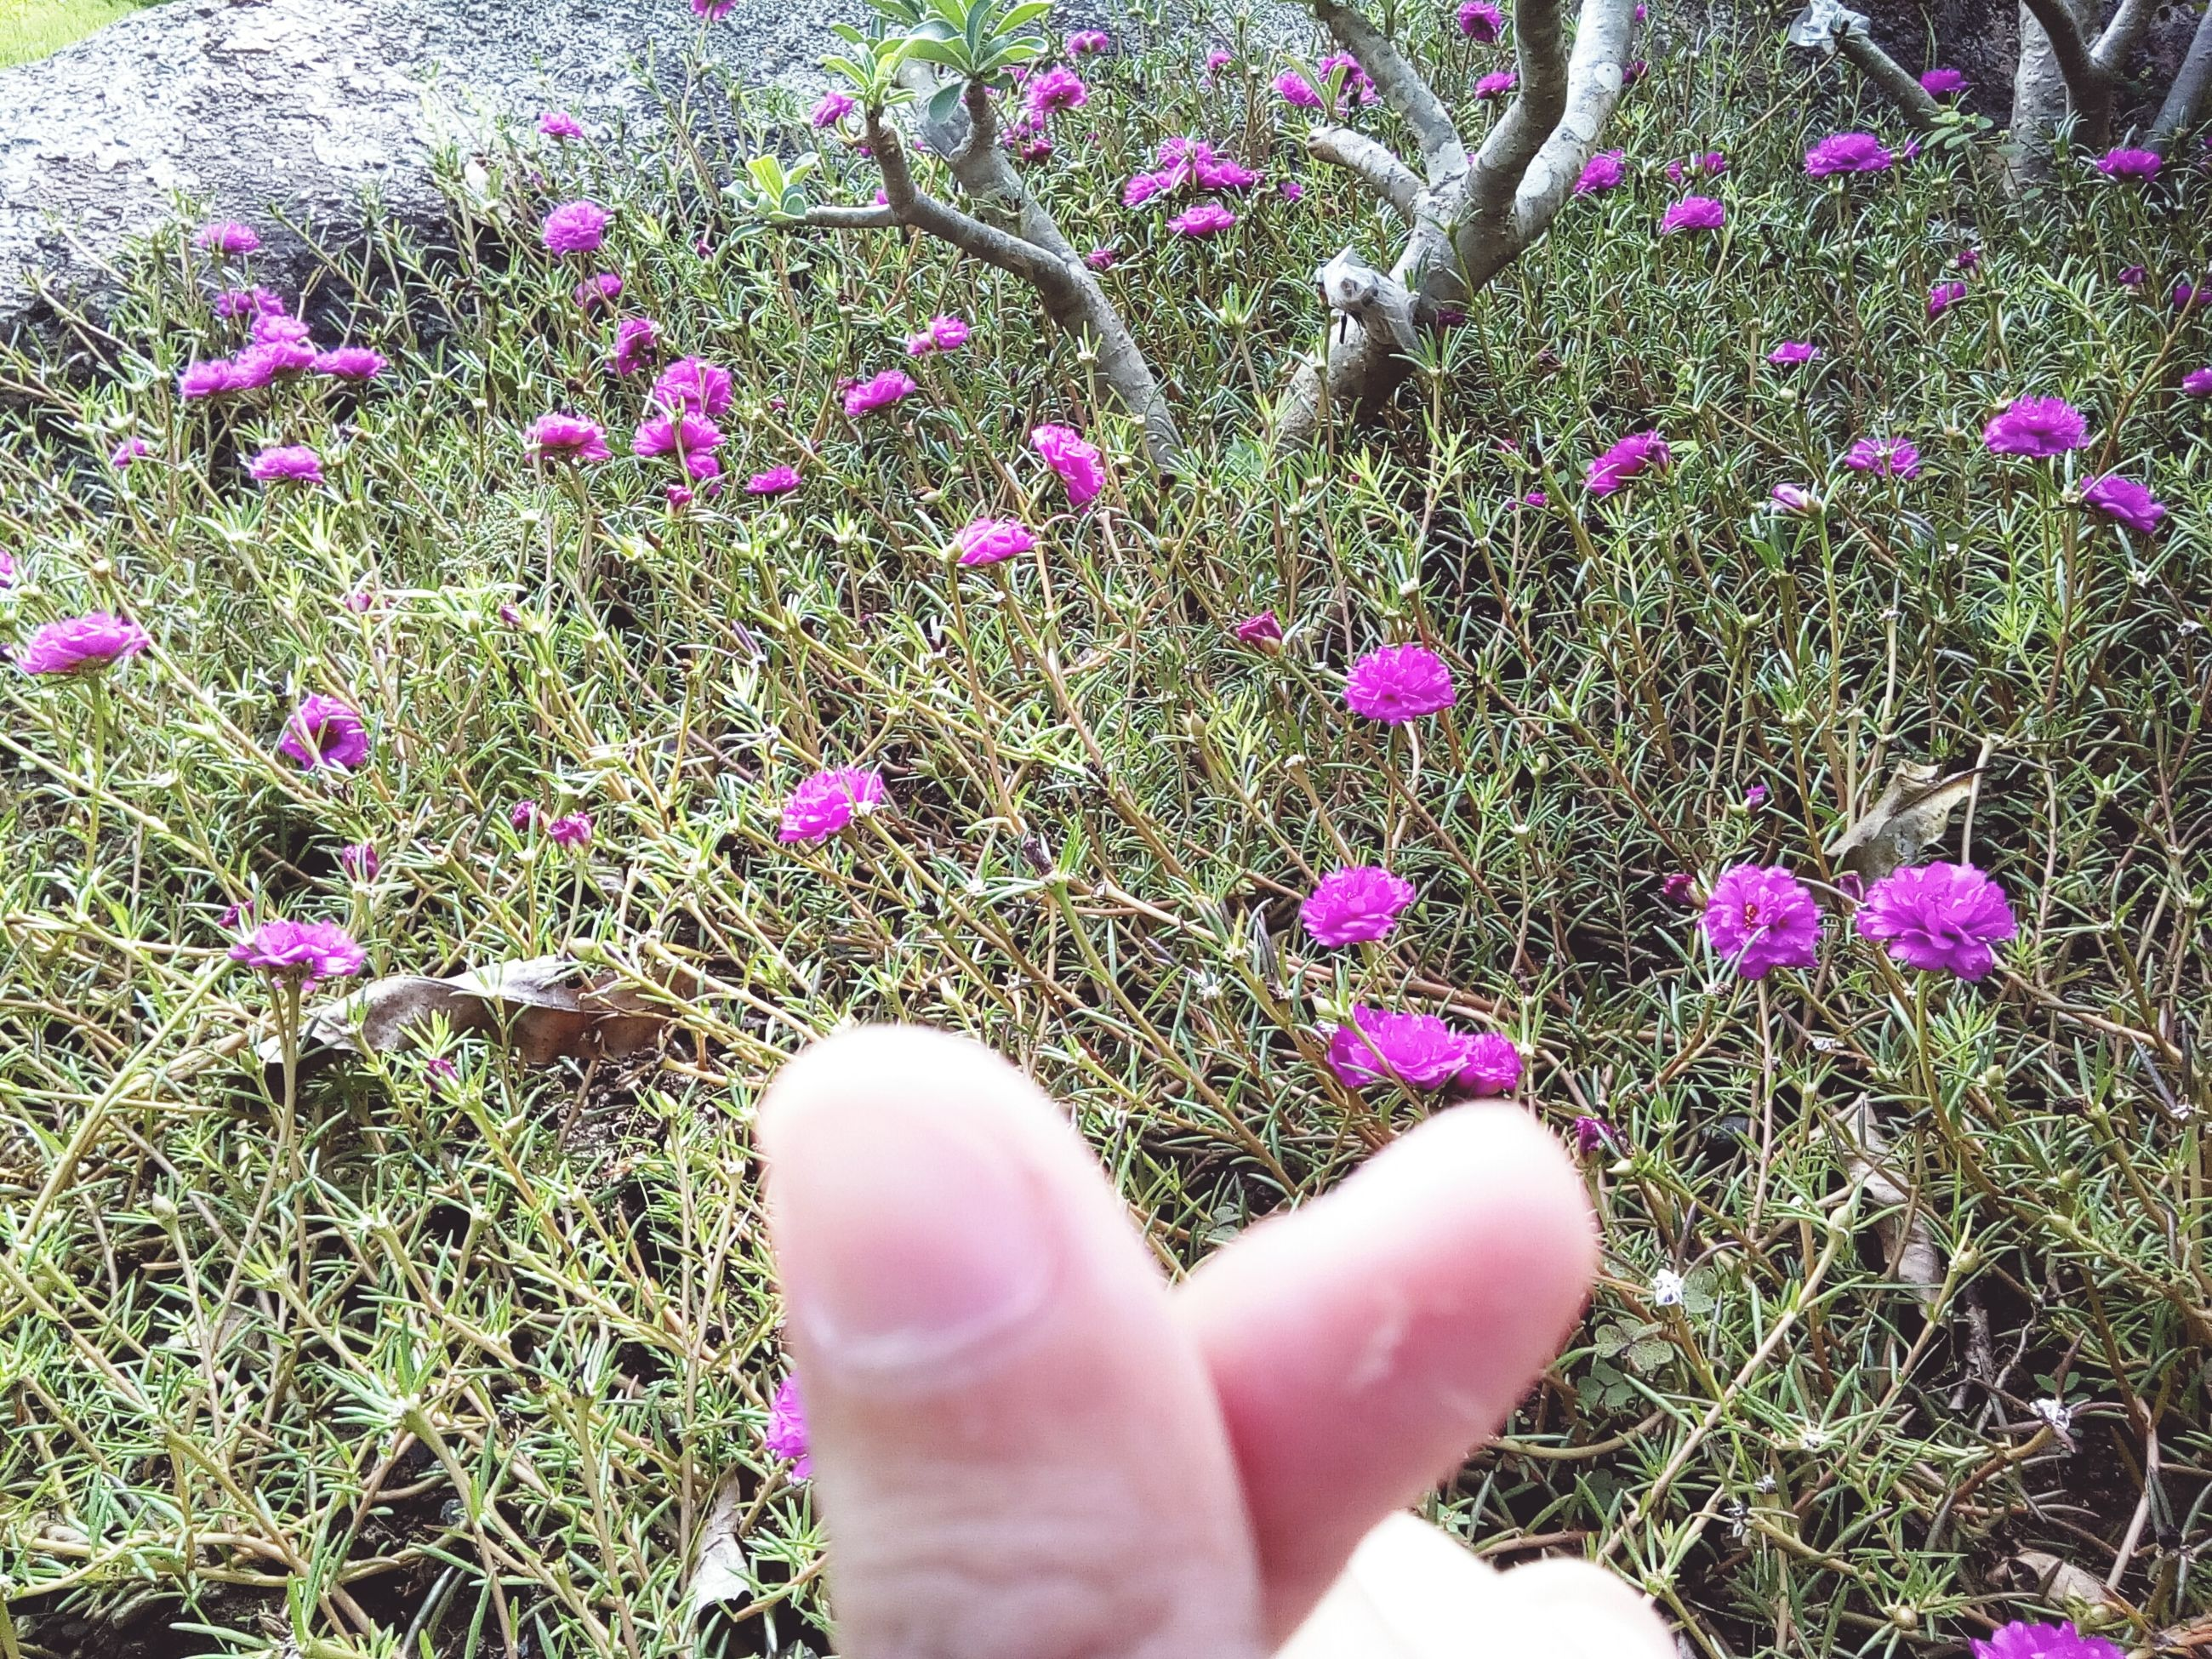 flower, human body part, one person, day, real people, pink color, nature, human hand, plant, high angle view, outdoors, growth, beauty in nature, fragility, grass, close-up, flower head, freshness, people